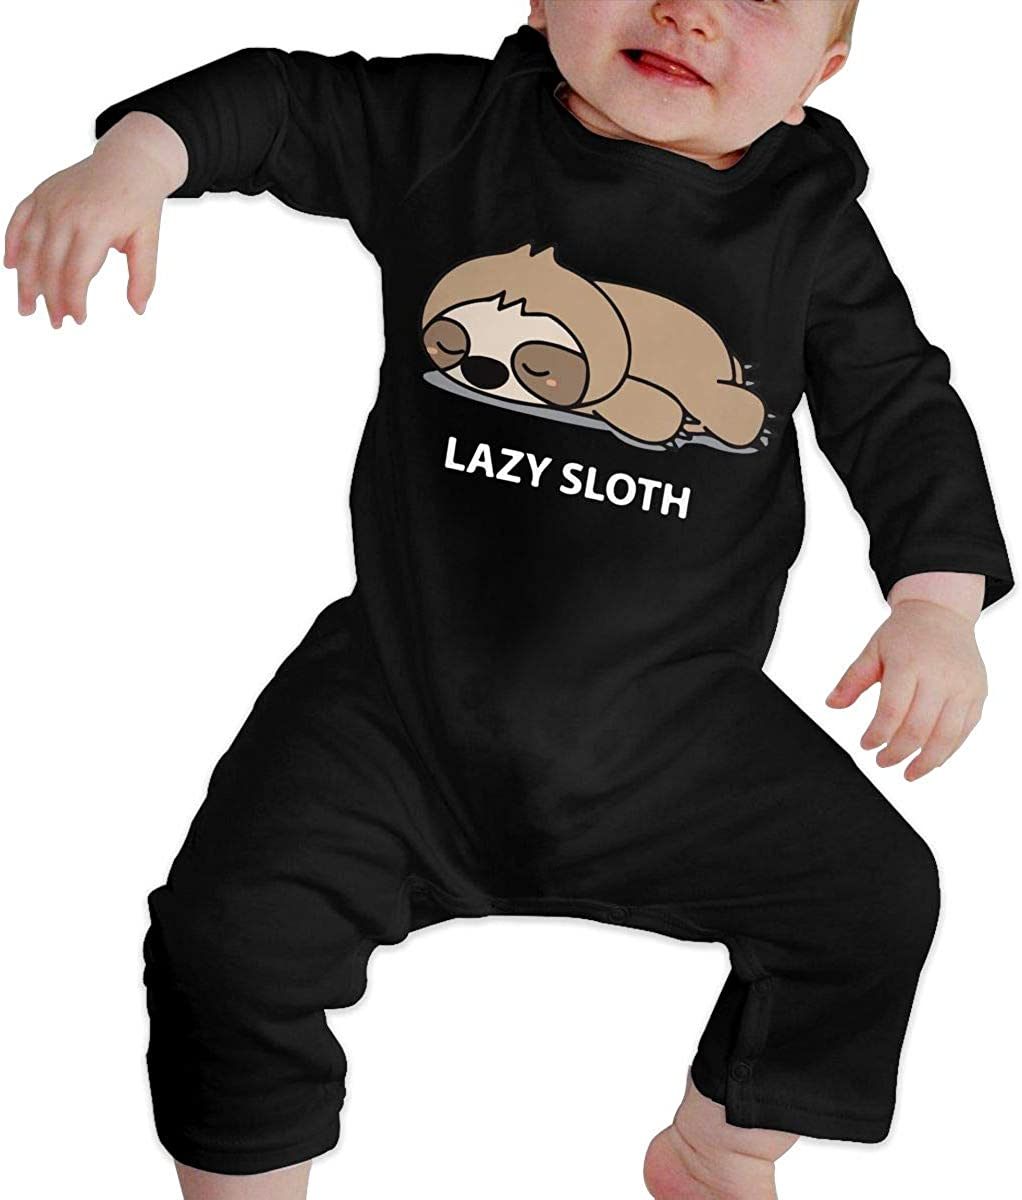 BKNGDG8Q Baby Boys Romper Jumpsuit Lazy Sloth-2 Organic One-Piece Kid Pajamas Clothes